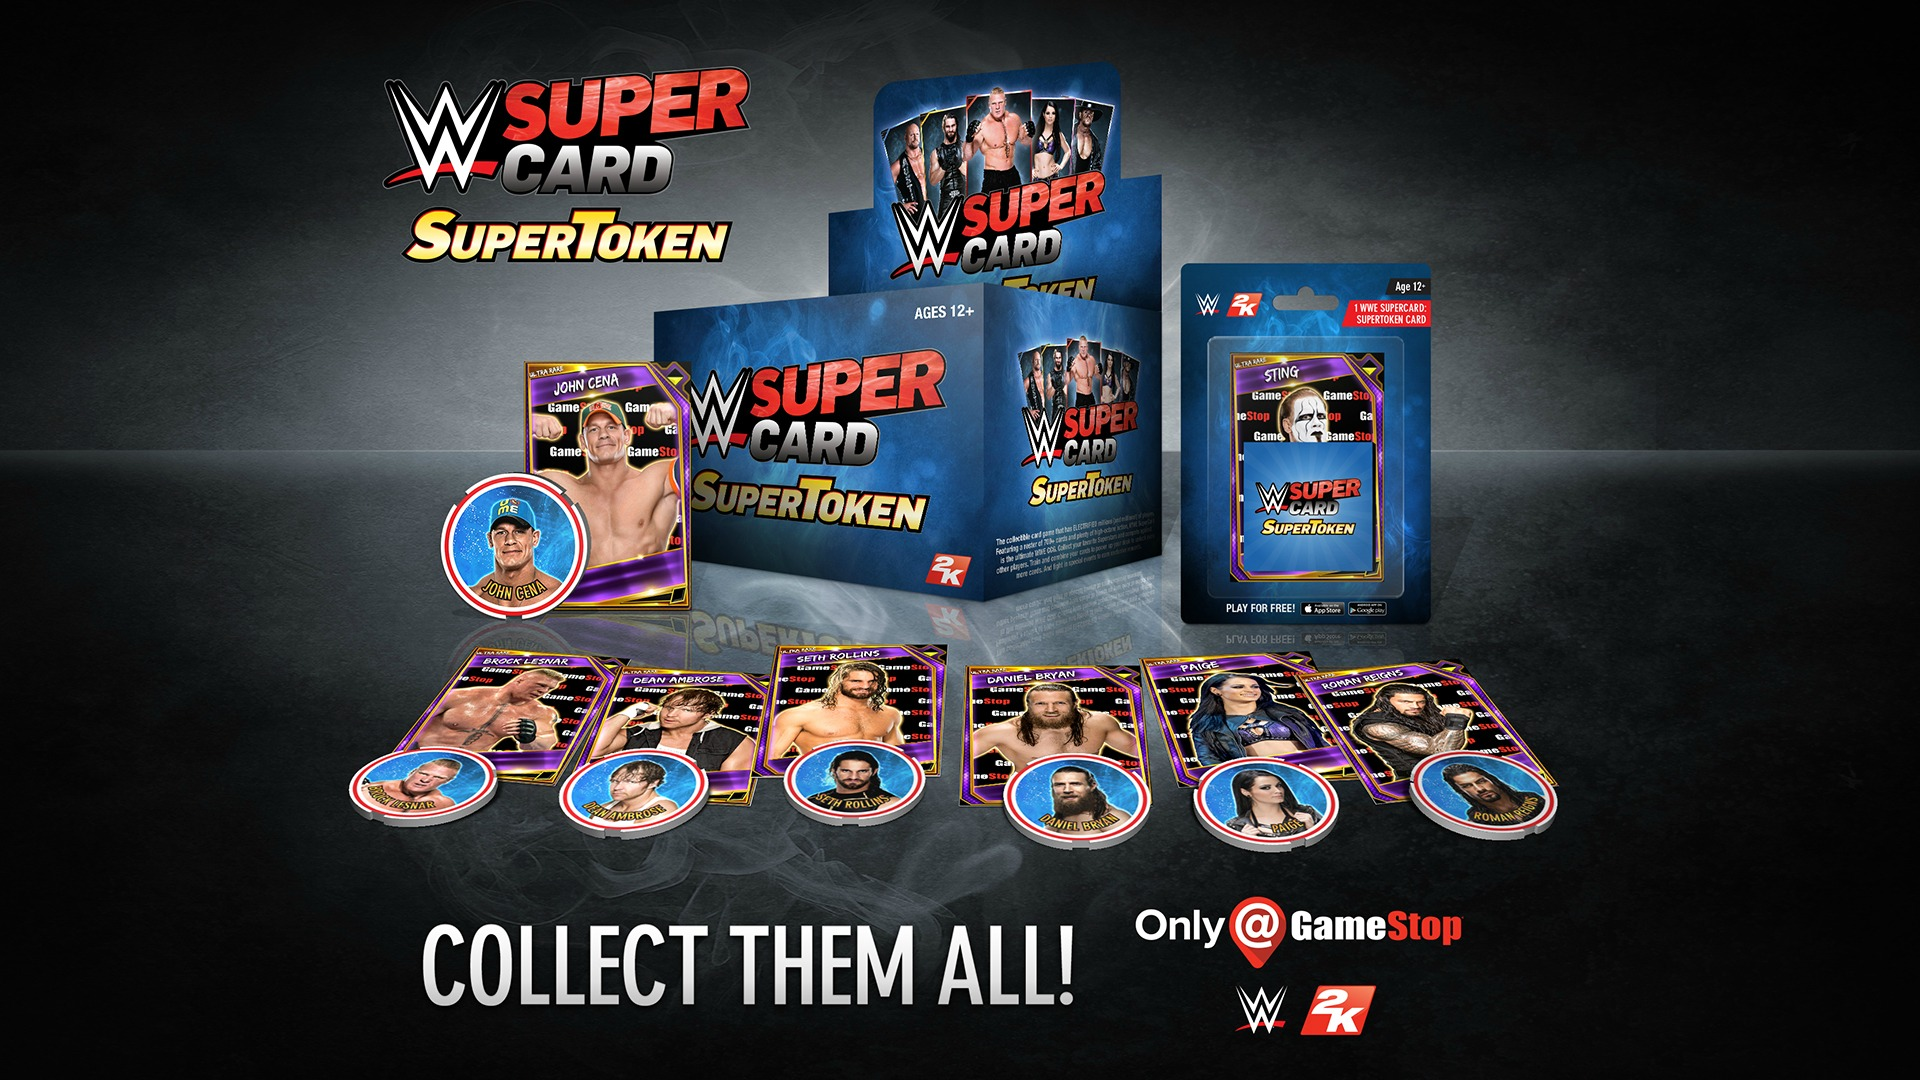 WWE SuperCard: SuperTokens are now available in GameStop stores throughout the U.S.